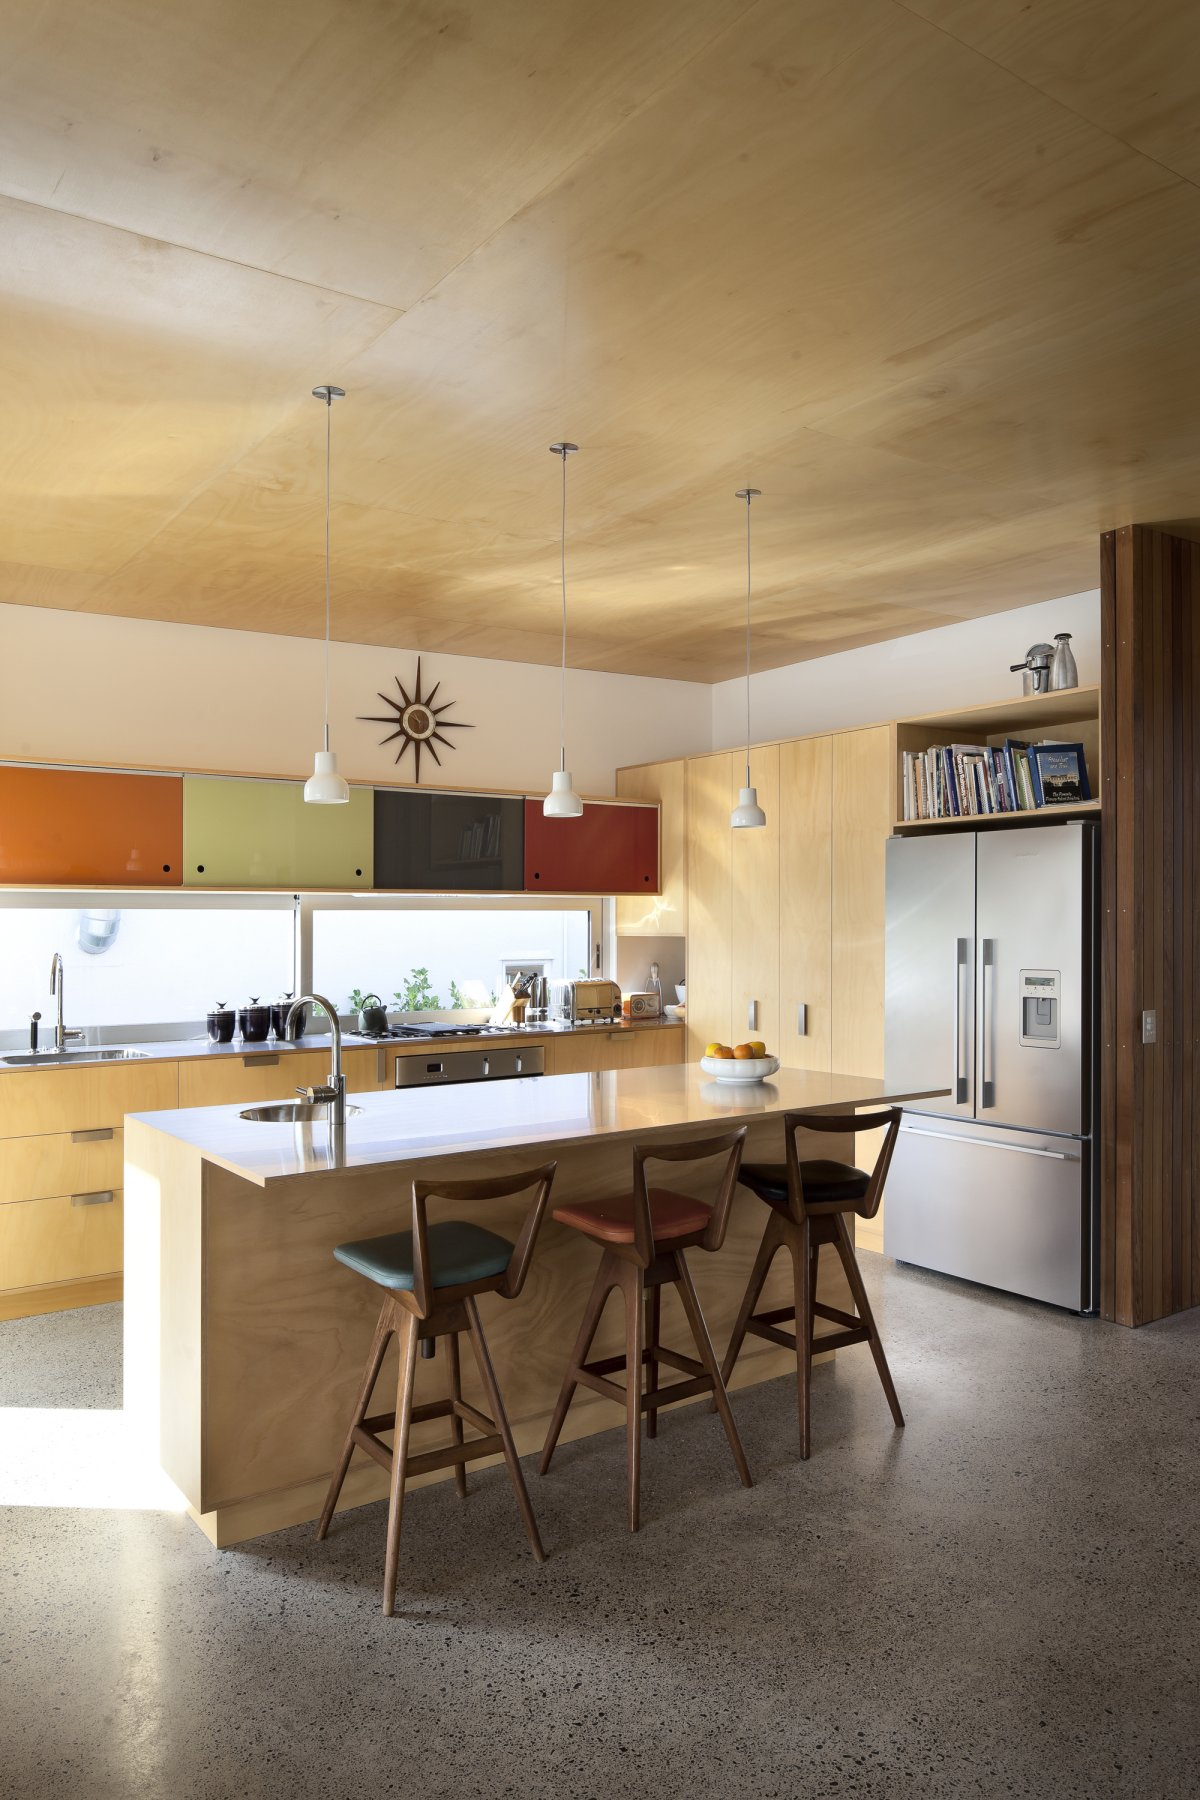 Breakfast Bar, Kitchen Island, 1950-60s Inspired Home in Auckland, New Zealand